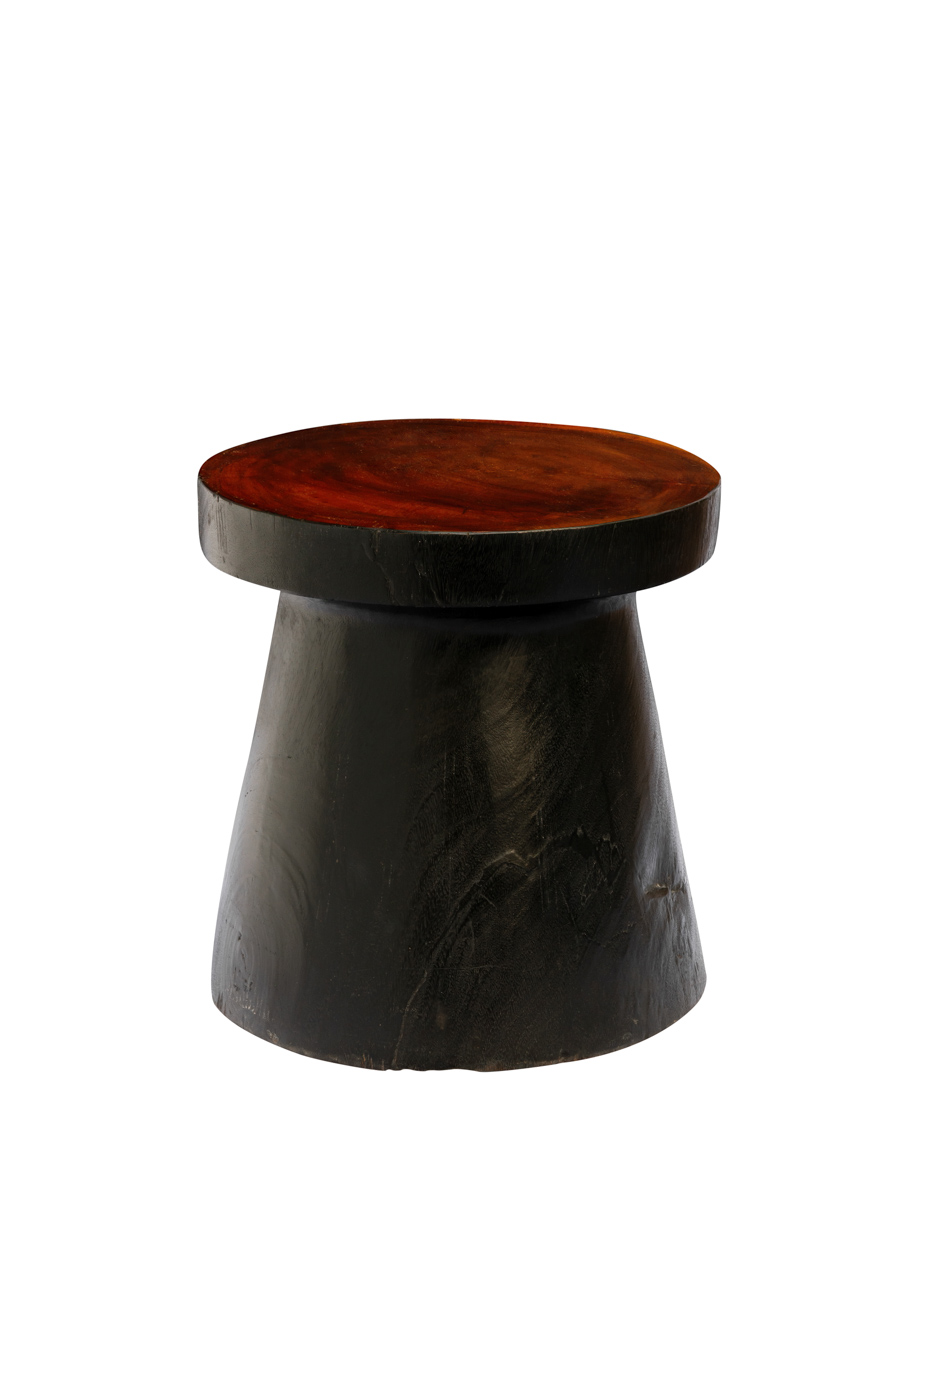 Teak wood side table